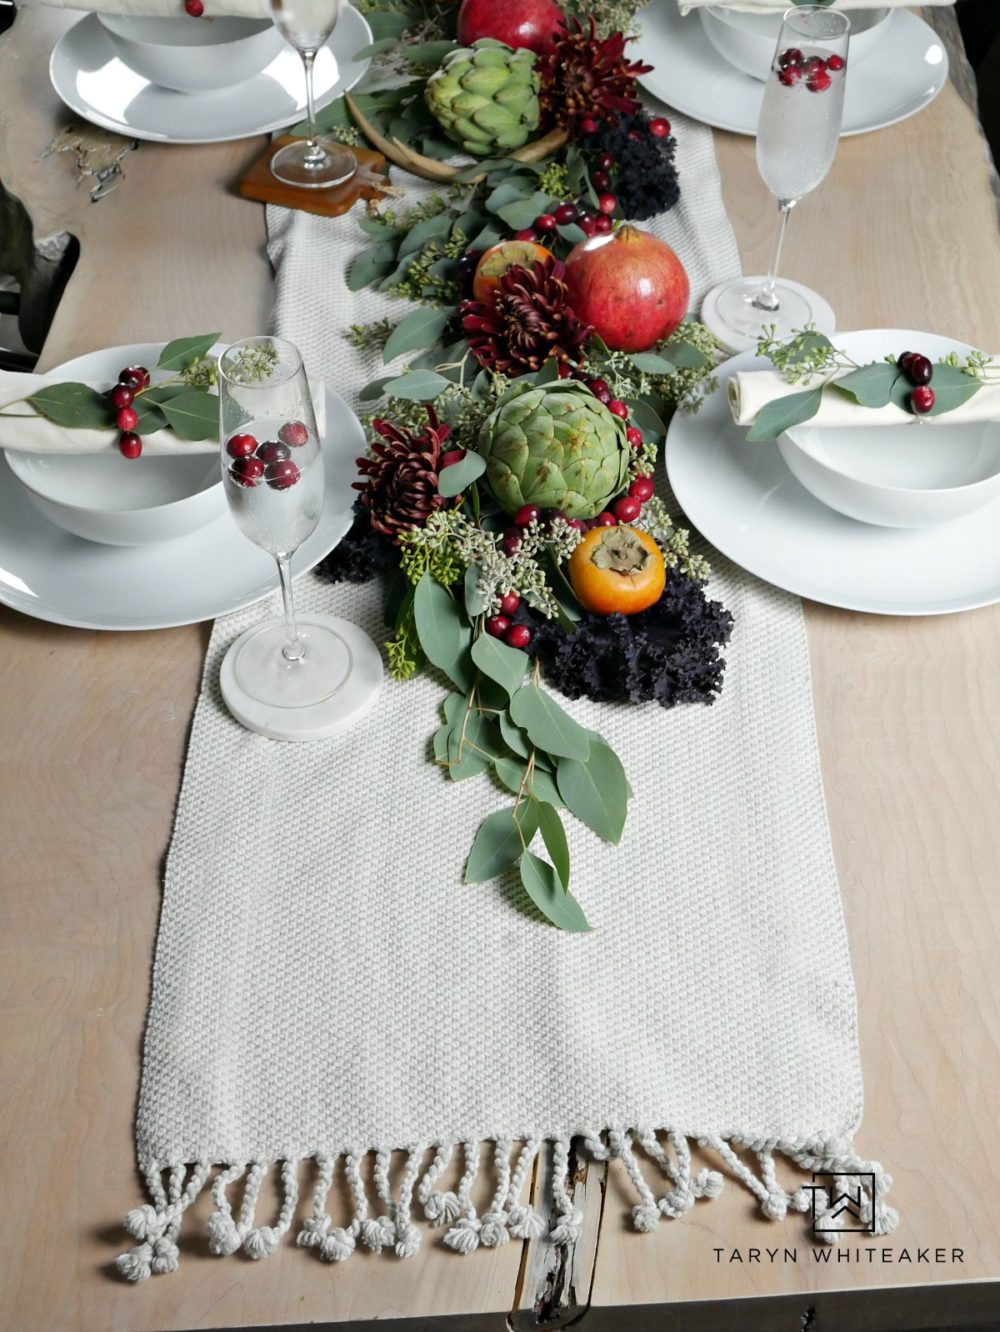 Rustic chic fall table using earth tones from fresh fruits and vegetables